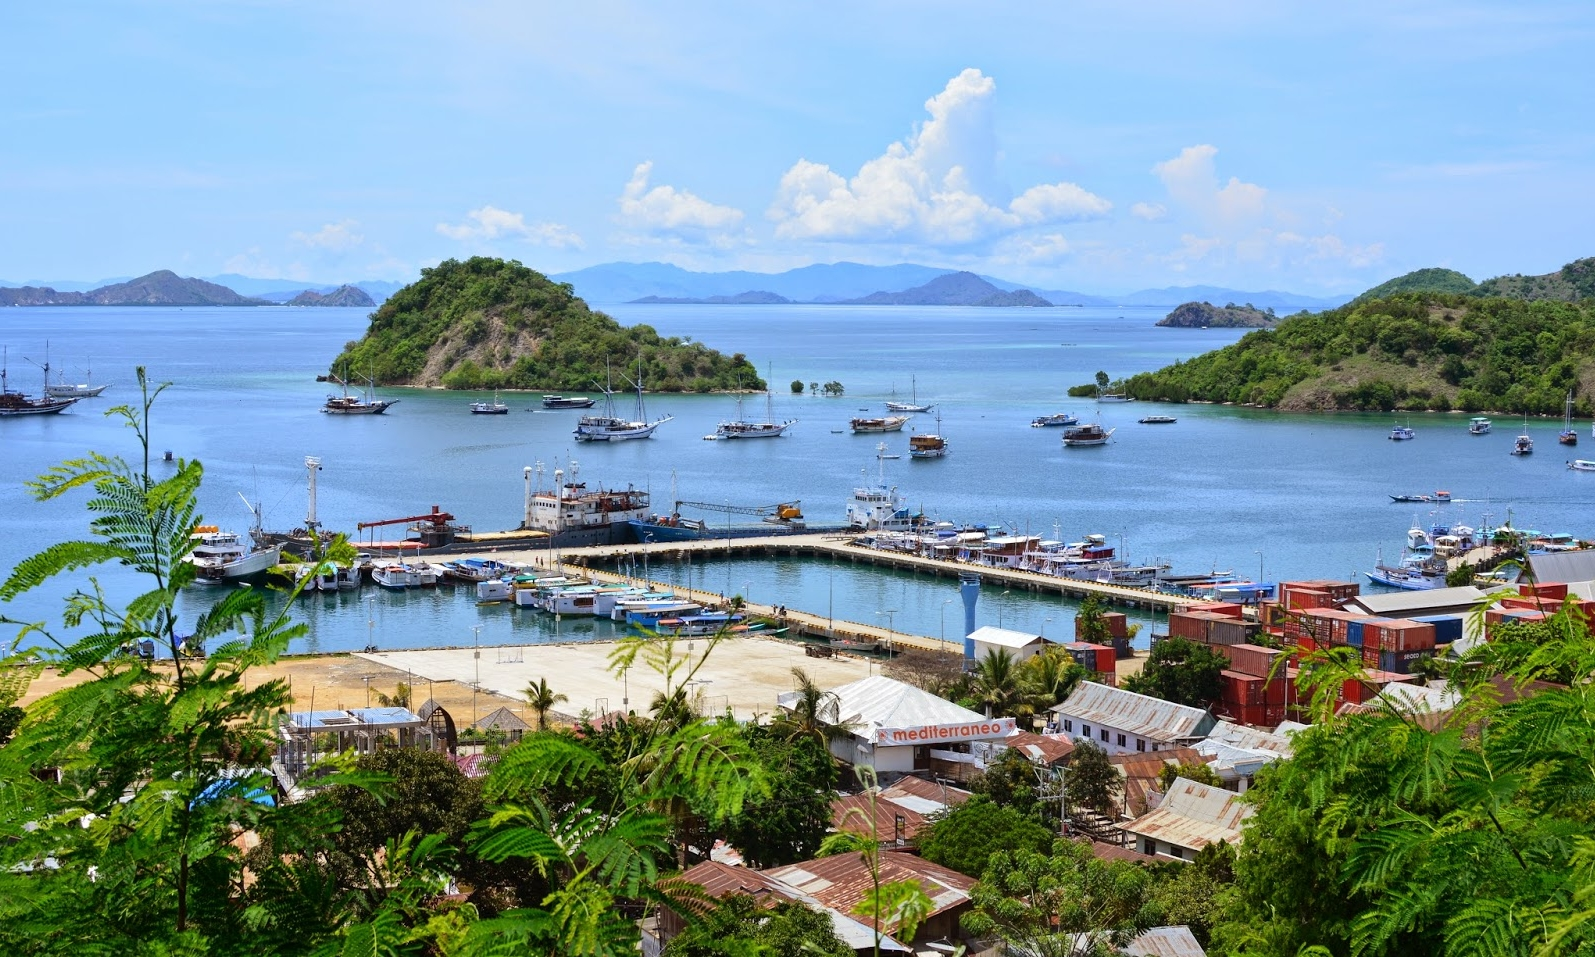 For the seafood lovers, Labuan Bajo Fish Market is the place to visit! - The fish market, Pasar Baru from his local name, is located along the seafront of Labuan Bajo. You pick your fresh fish or seafood and they will cook it on the barbecue.